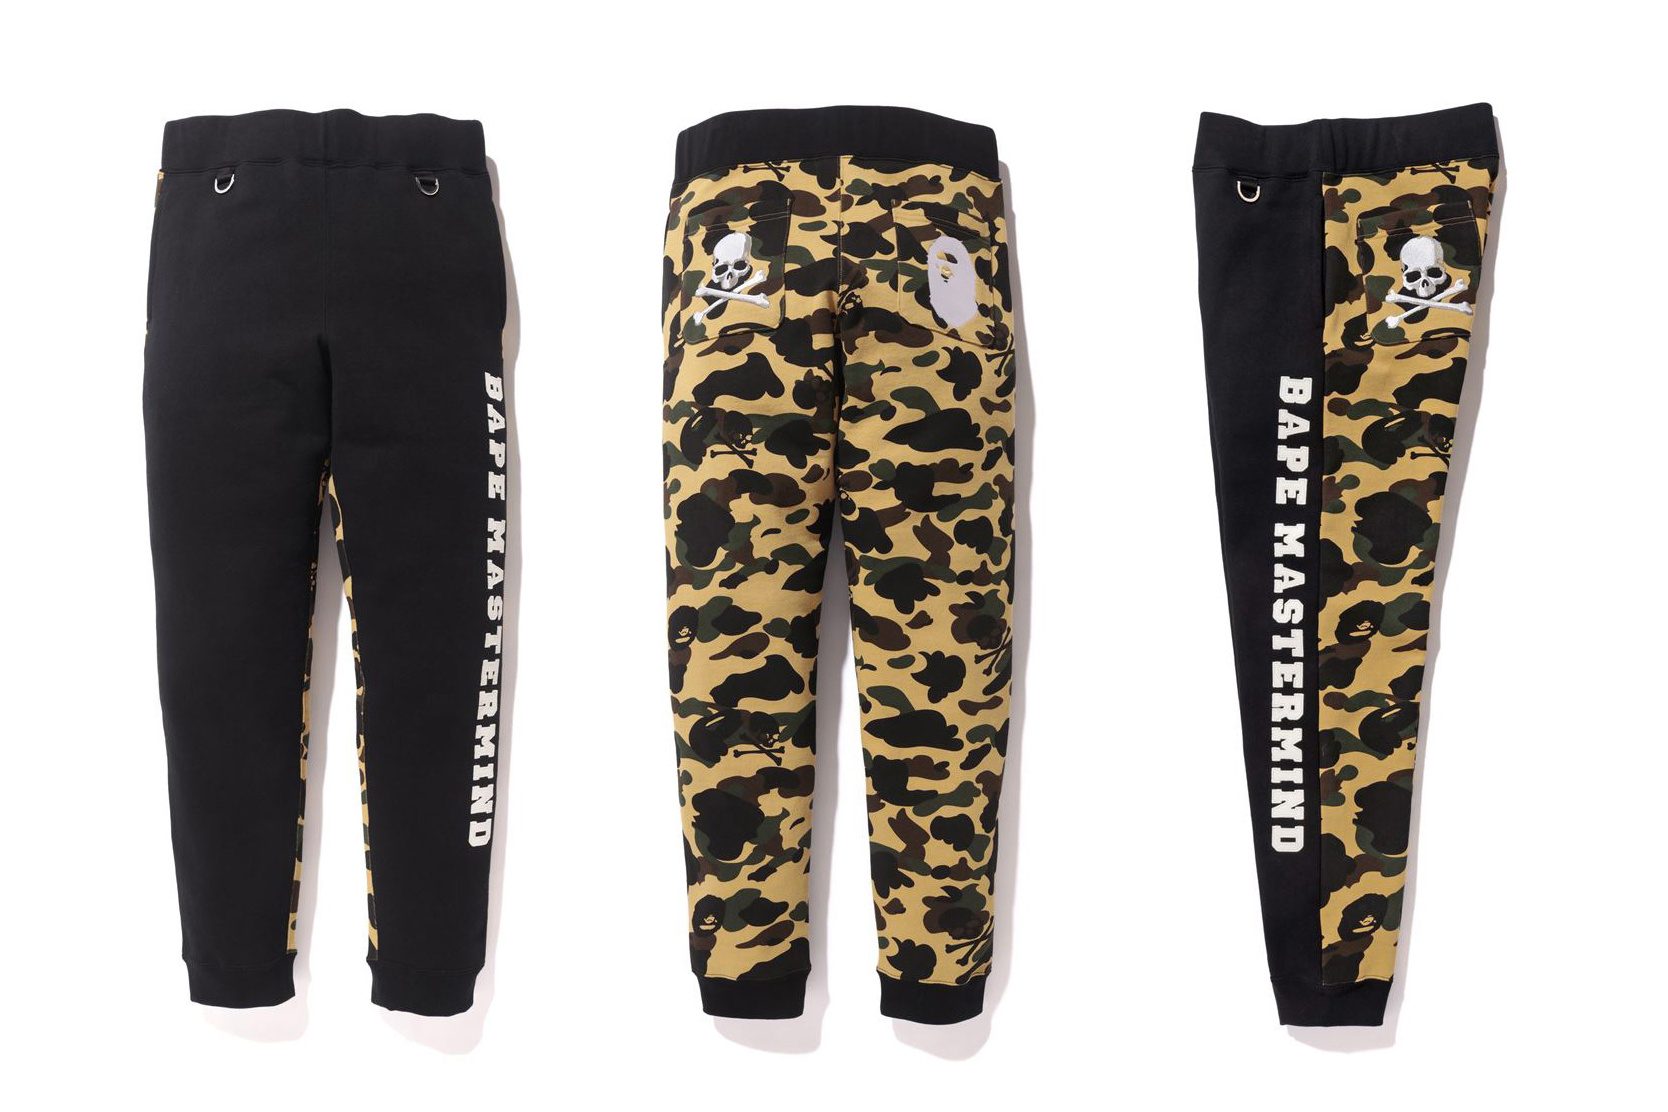 bape-x-mastermind-japan-2016-fall-winter-collaboration-00016